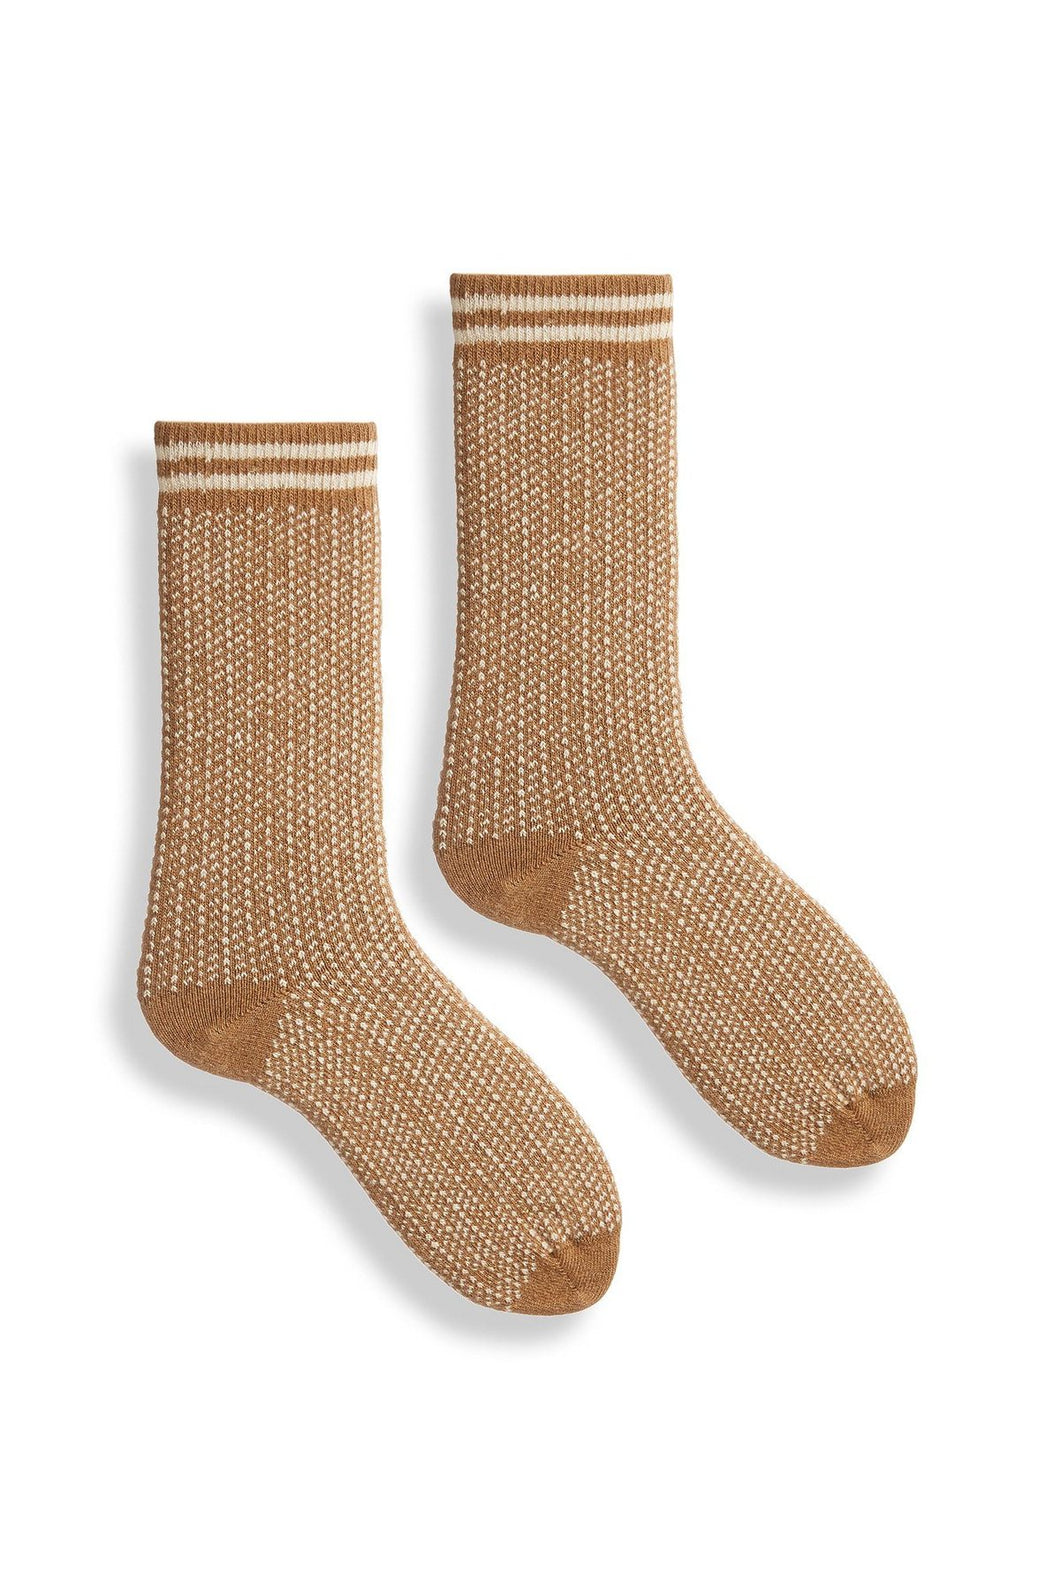 Lisa B, Crew Socks, Woman's, Merino, Cashmere, Made in the USA, Sustainable, Ethically Produced, Camel, Brown, Nordic Birdseye